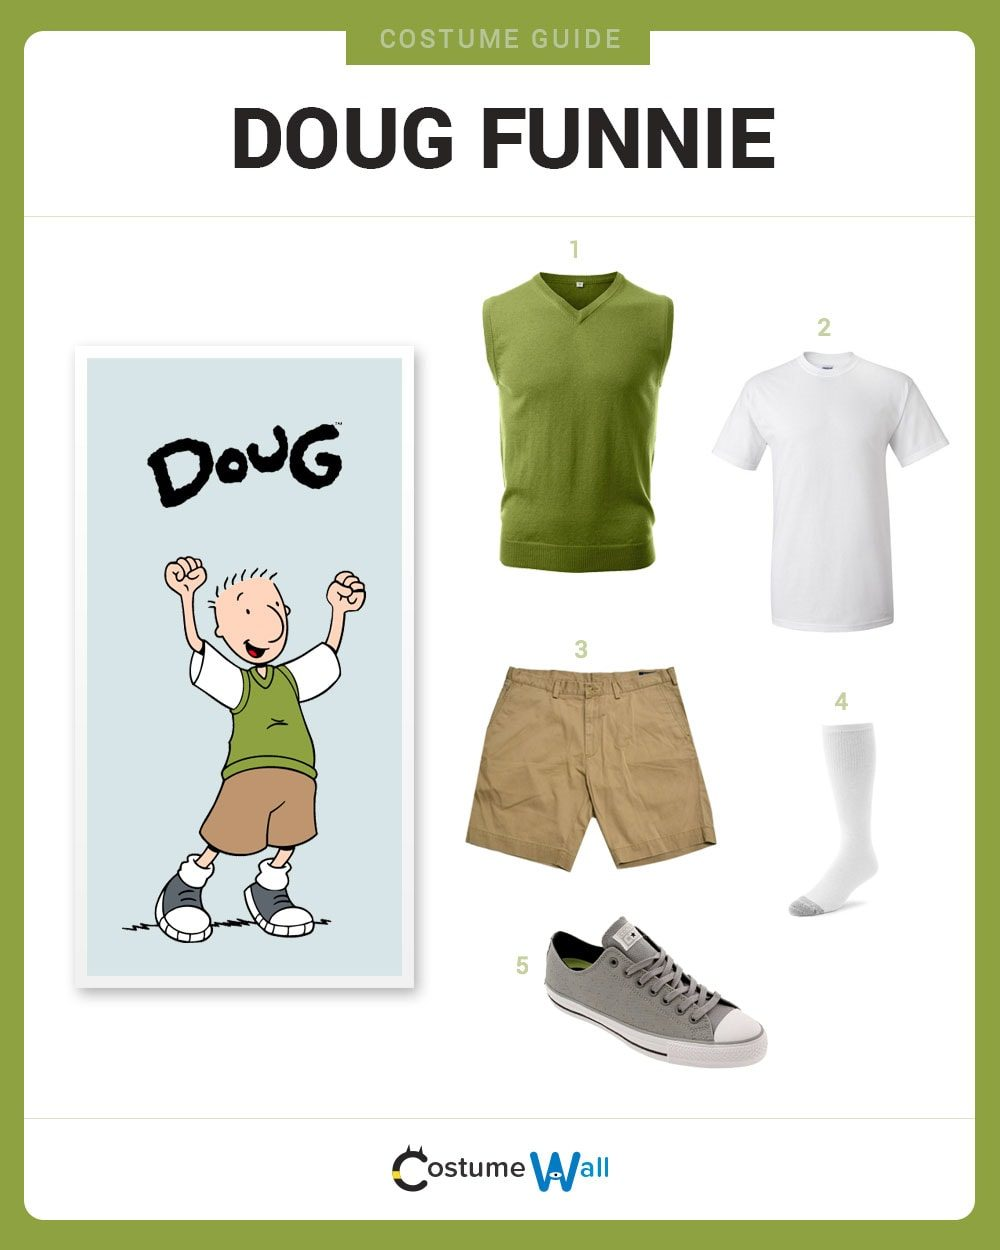 Doug Funnie Costume